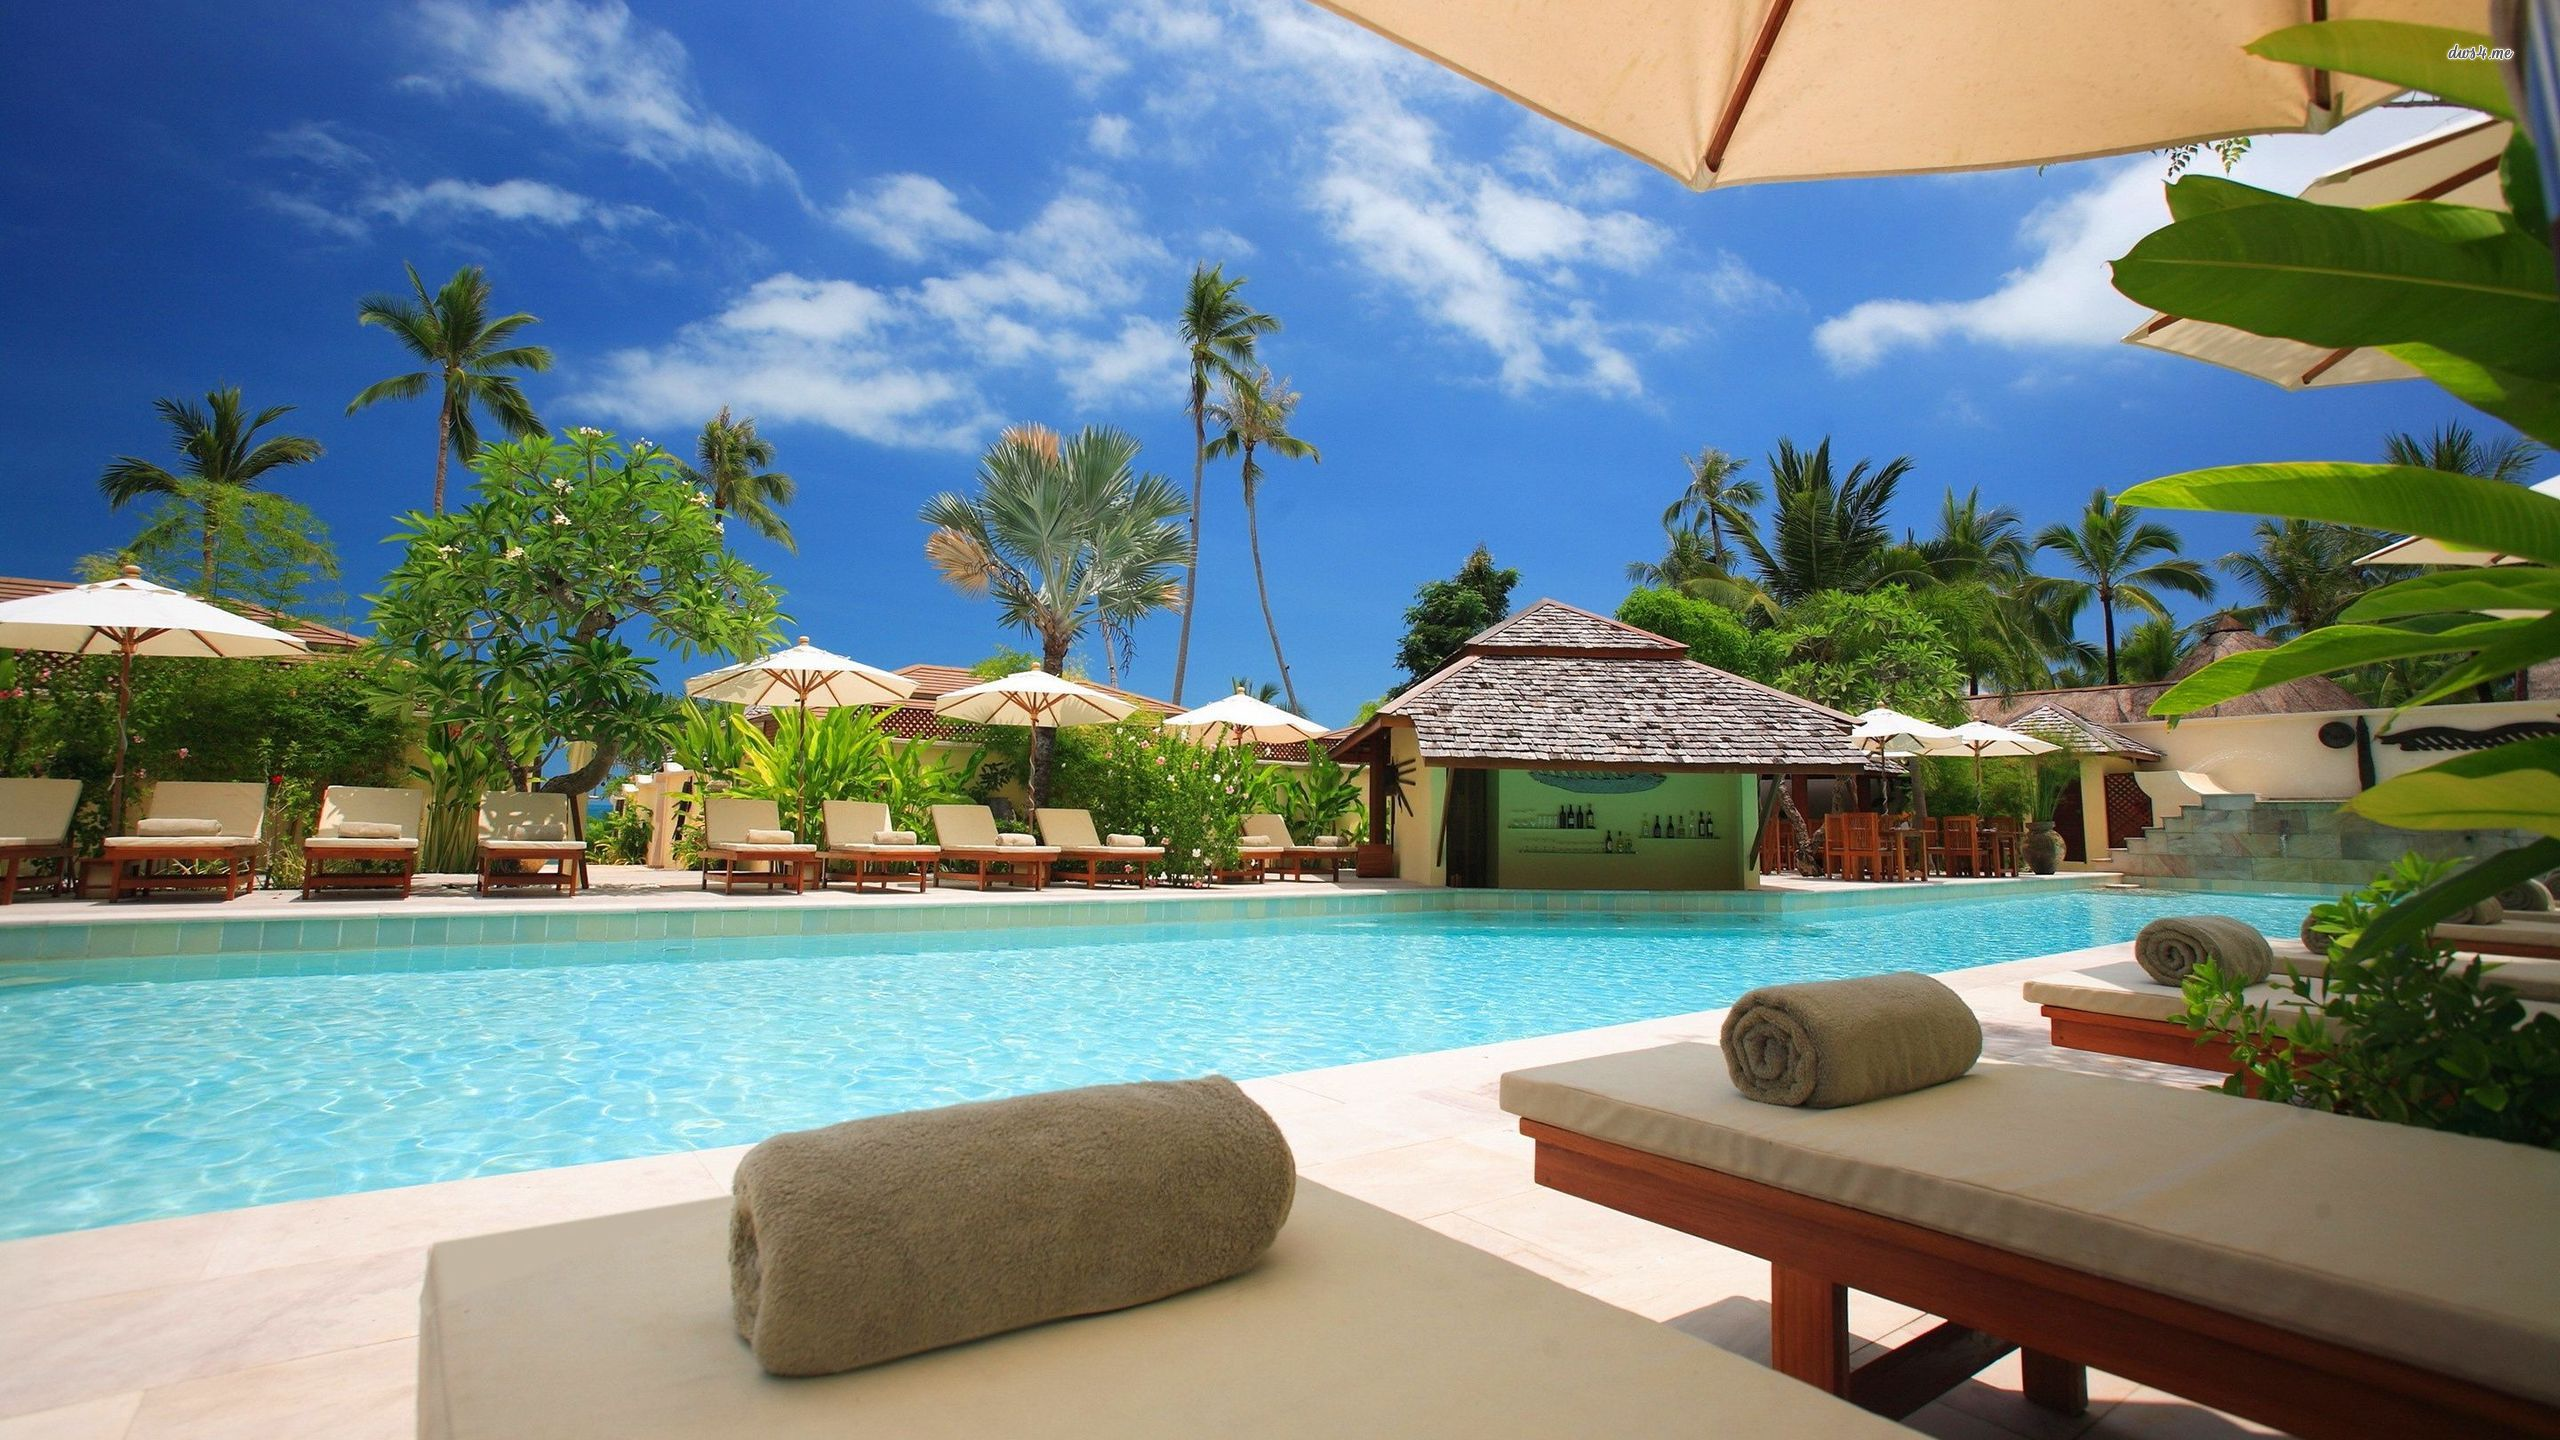 tropical resorts wallpaper background - photo #8